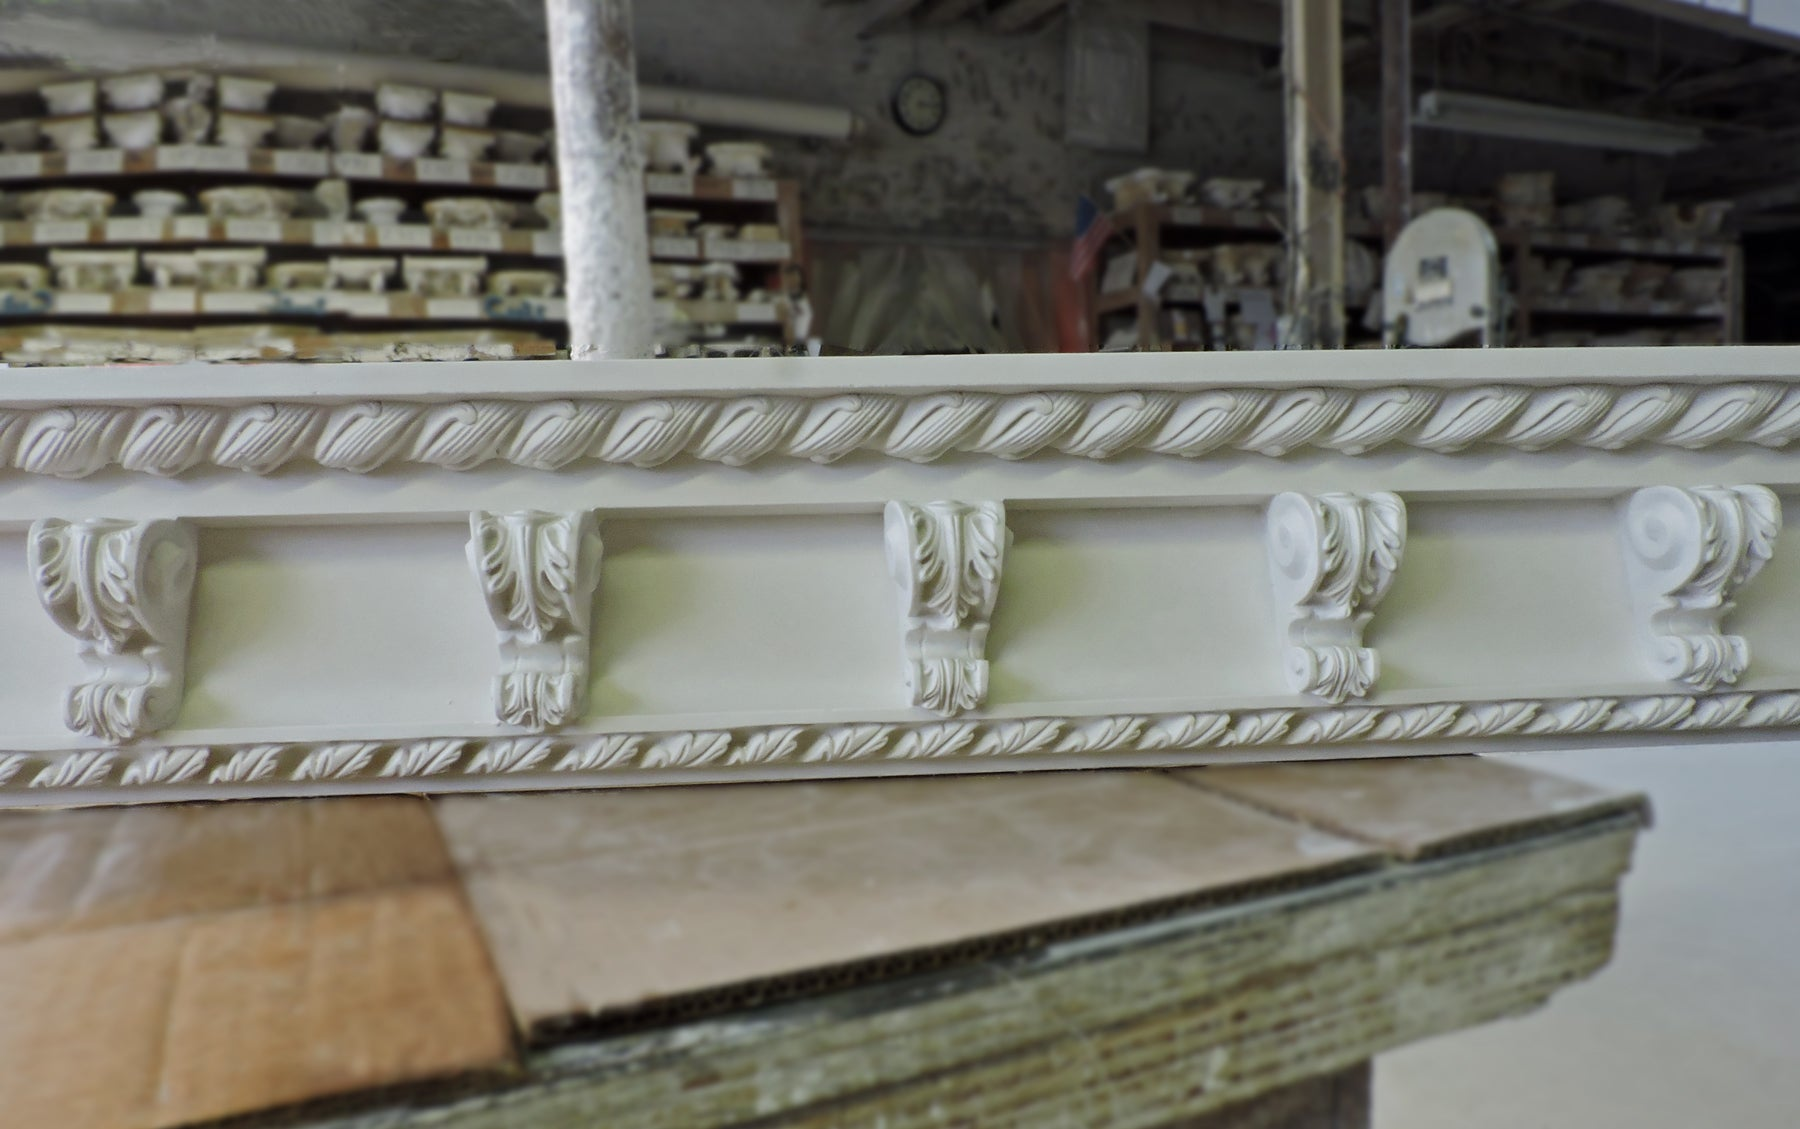 ColumnsDirect.com - Brockwell Incorporated Linear Plaster Decorative Crown Molding Designs